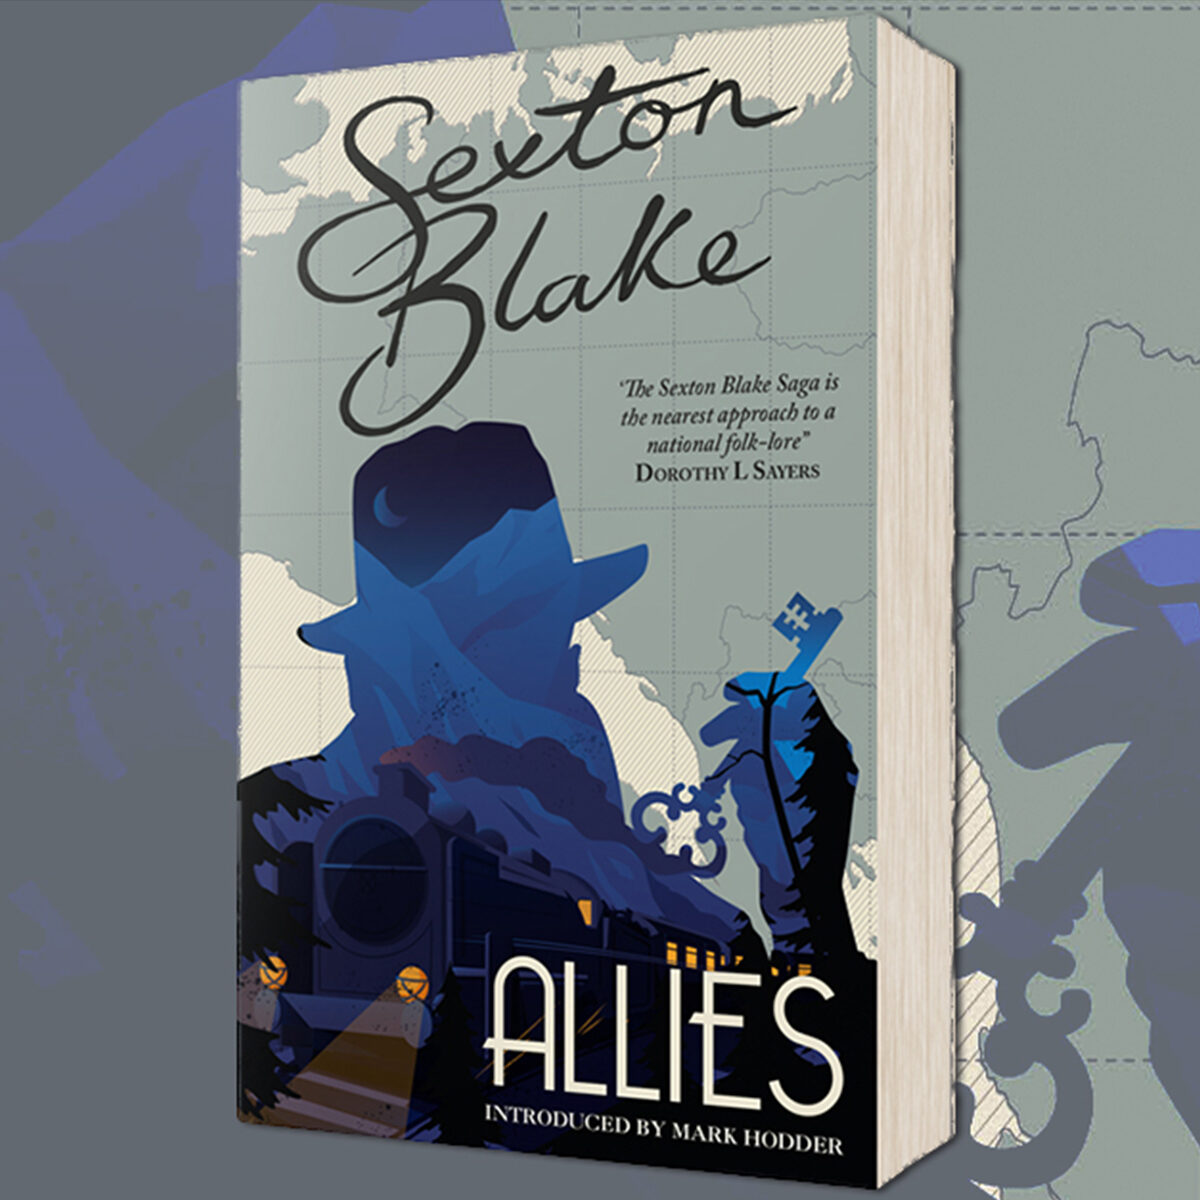 OUT NOW: Sexton Blake's Allies introduced by Mark Hodder